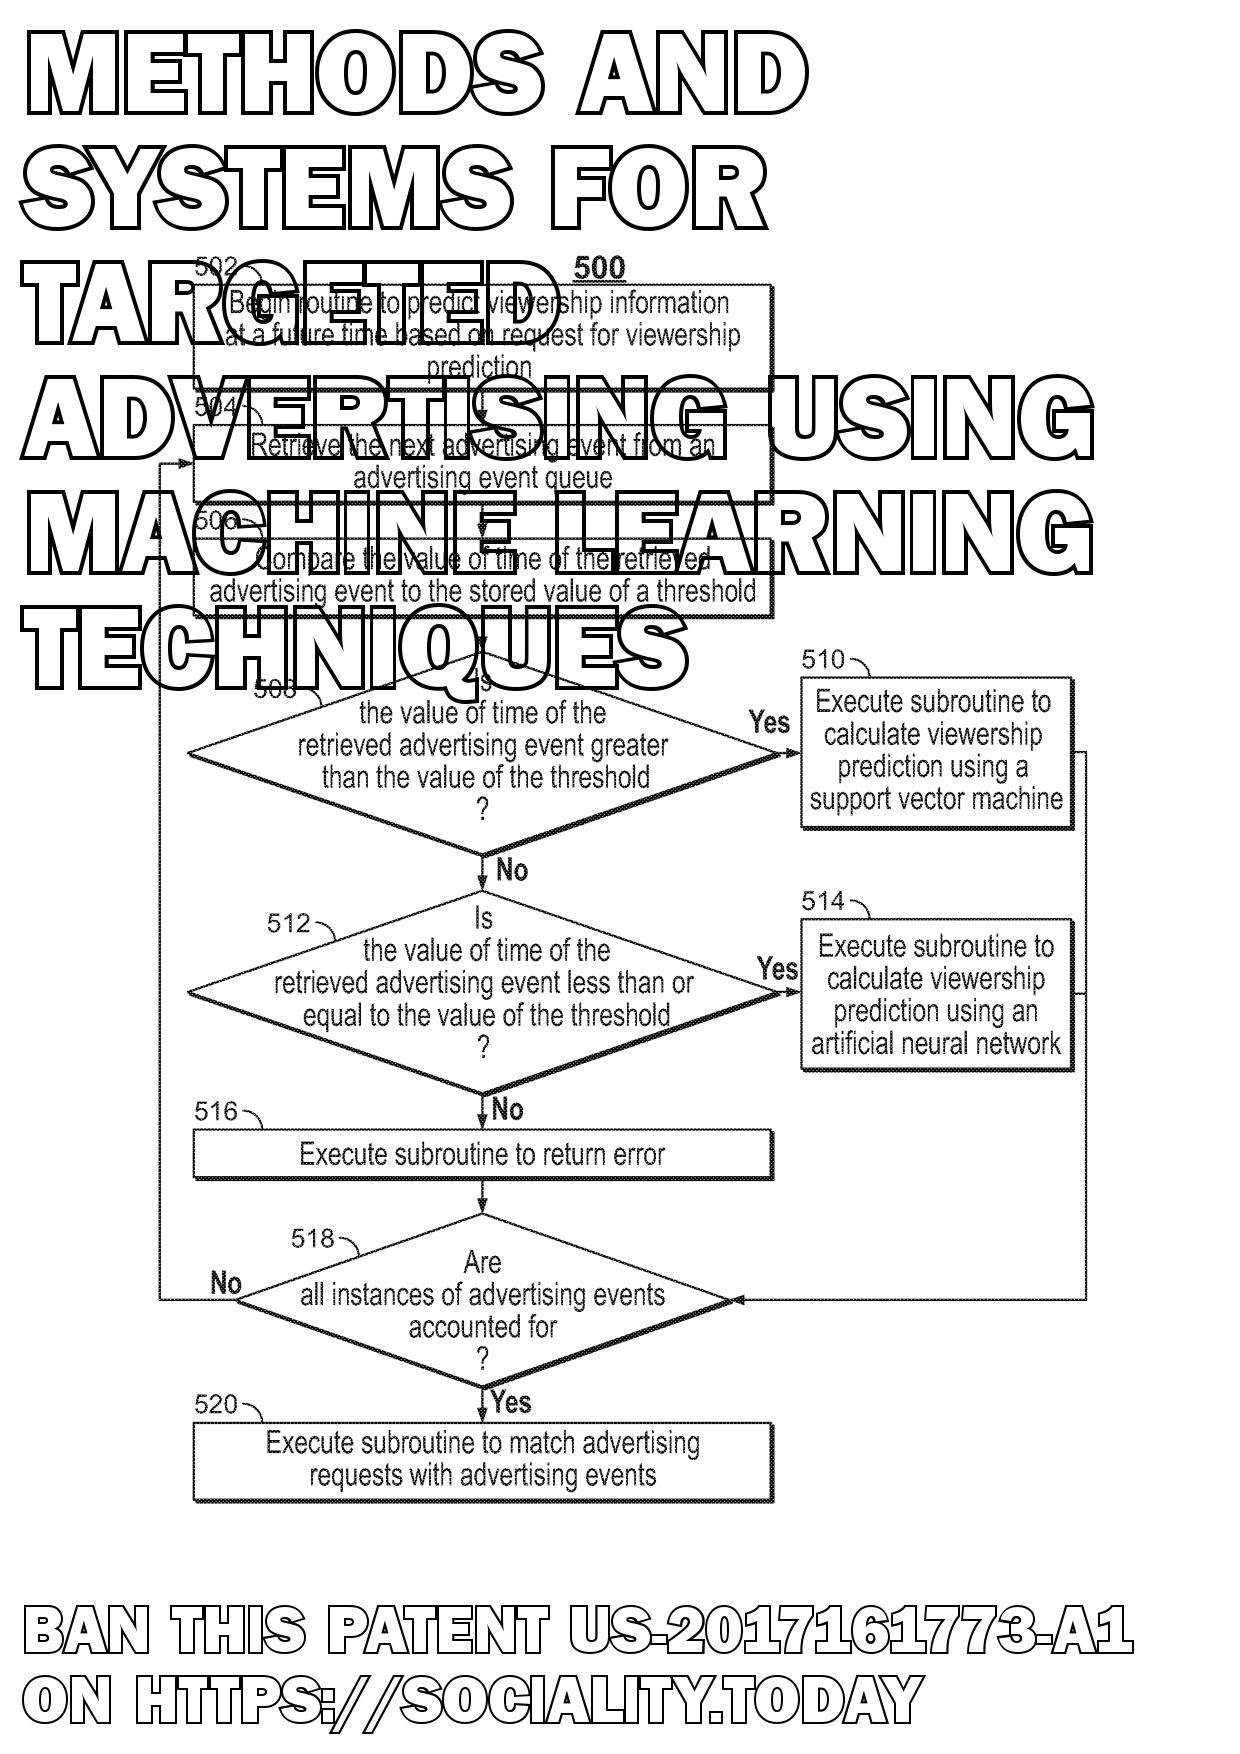 Methods and Systems for Targeted Advertising Using Machine Learning Techniques  - US-2017161773-A1